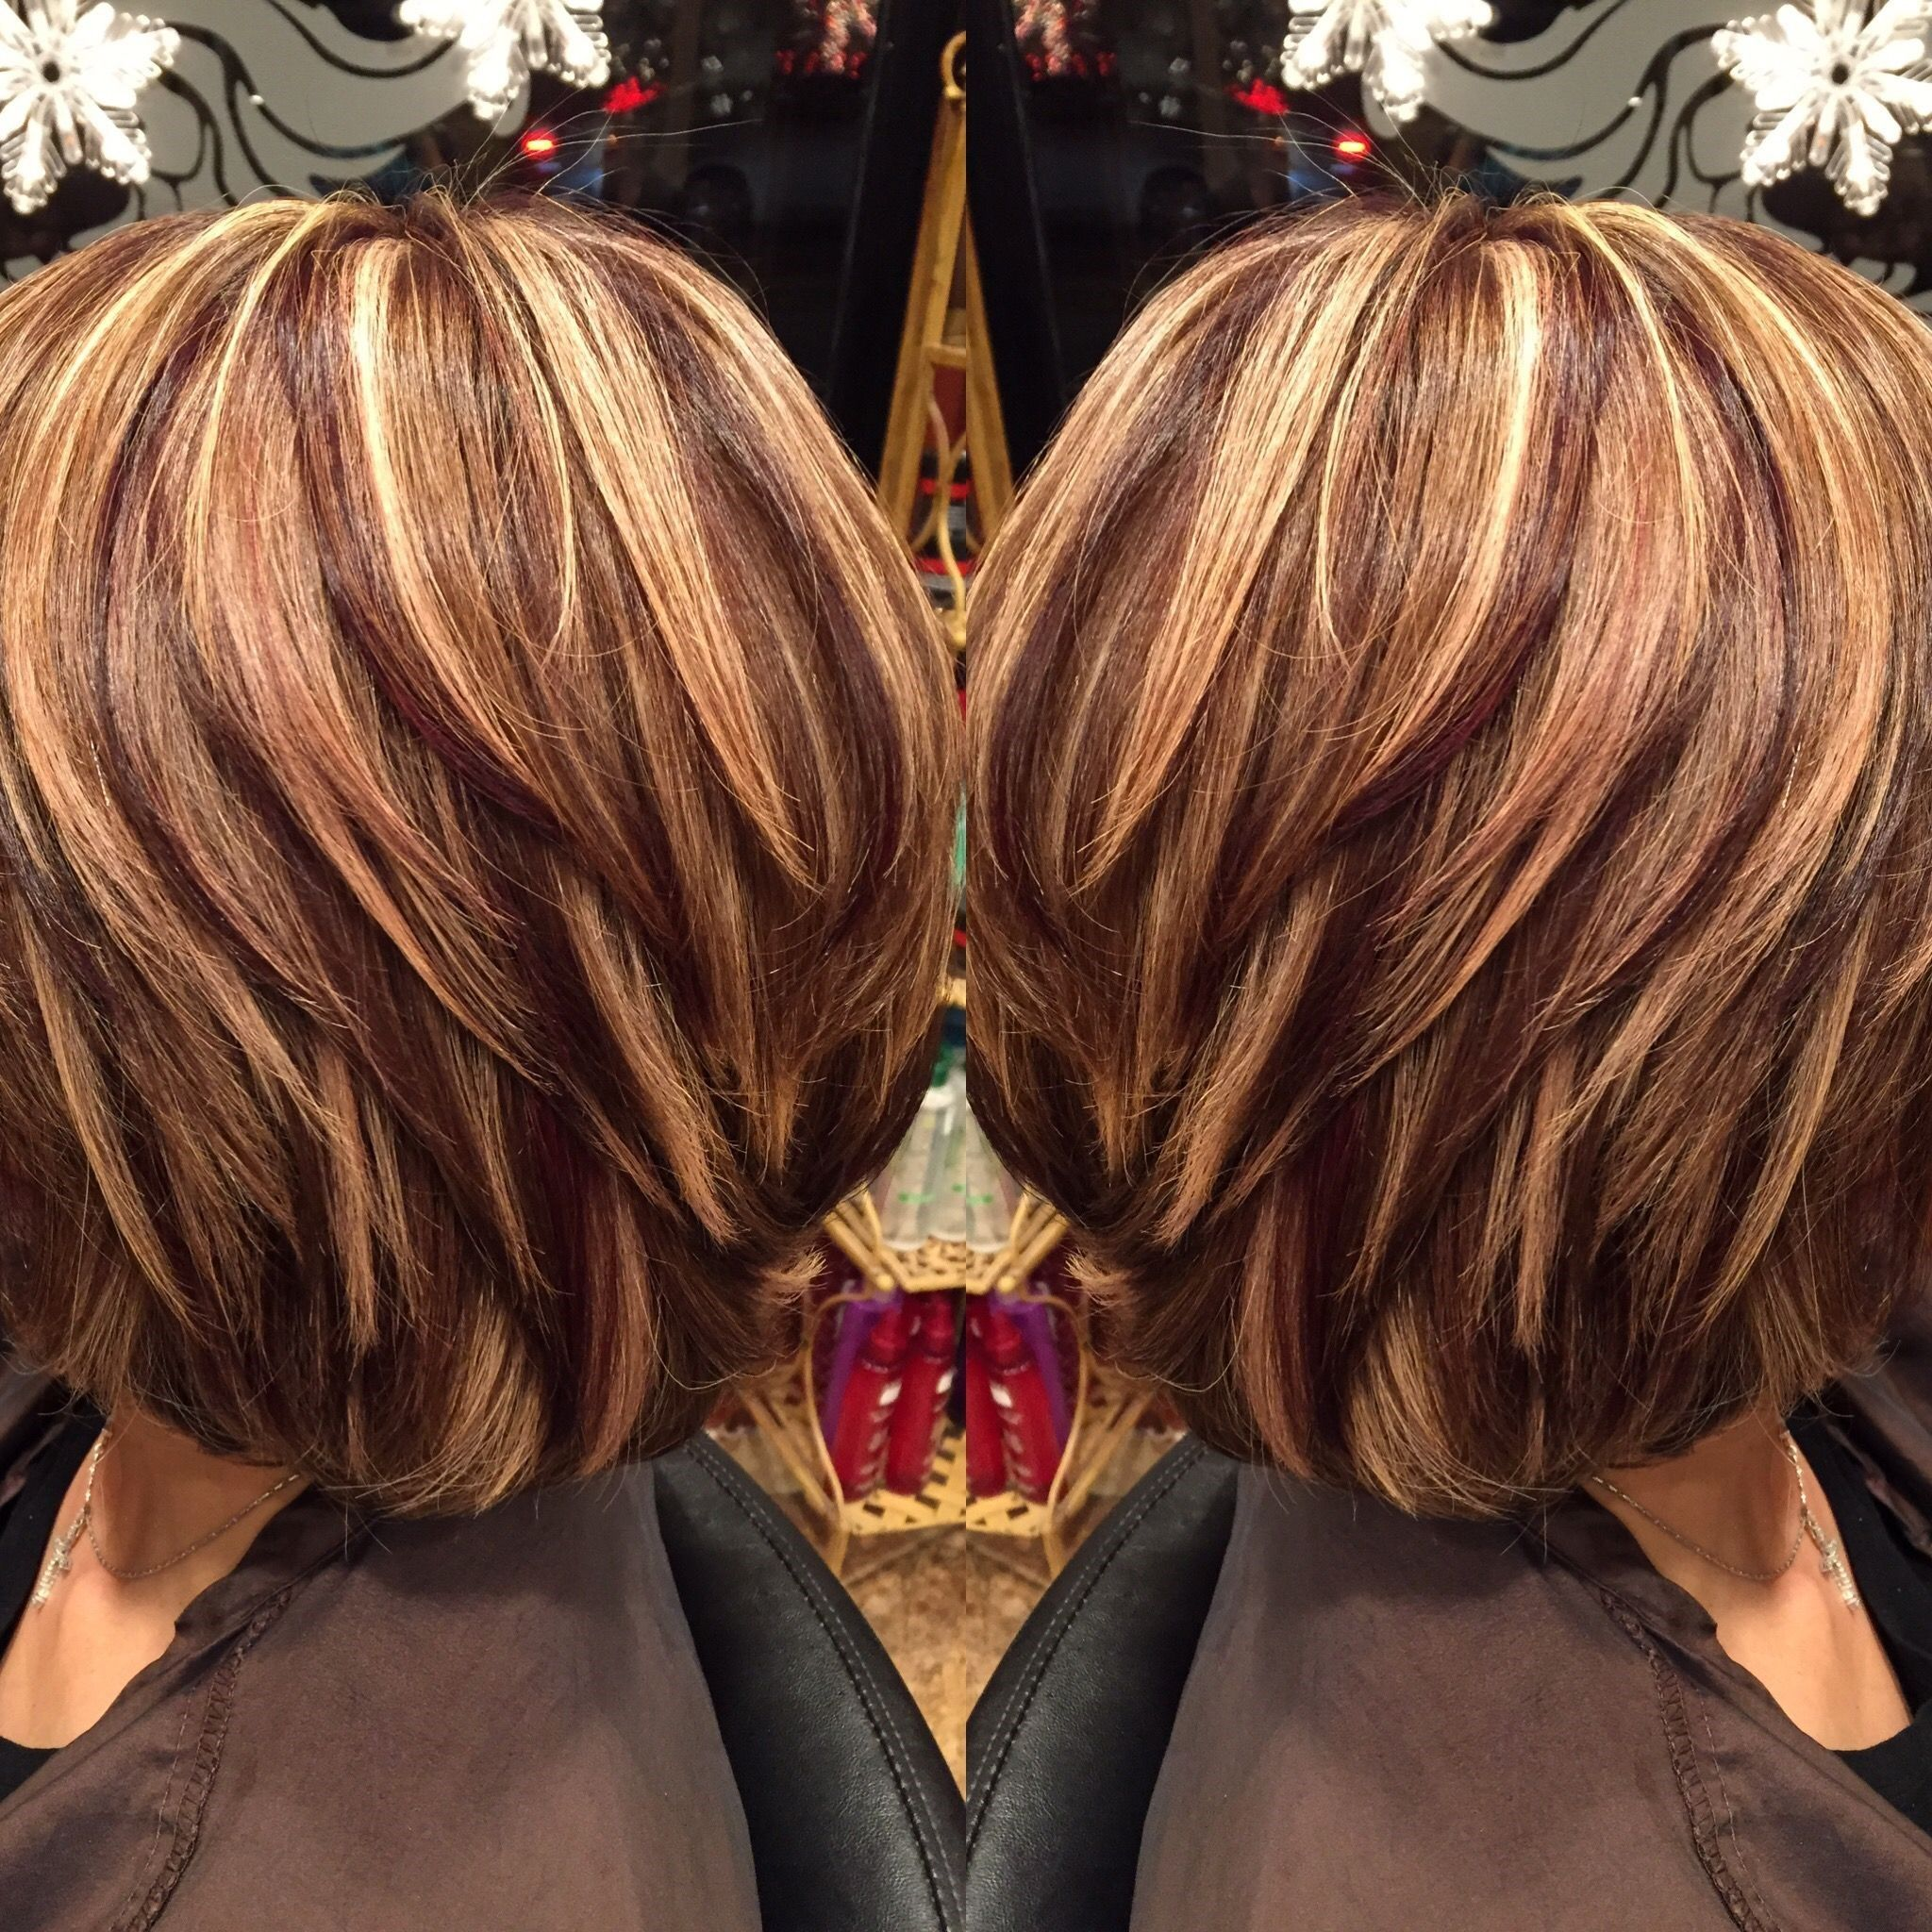 Latest Collection Of Short Hairstyles With Highlights And Lowlights Beequeenhair Blog In 2020 Hair Styles Fall Hair Highlights Hair Color Highlights